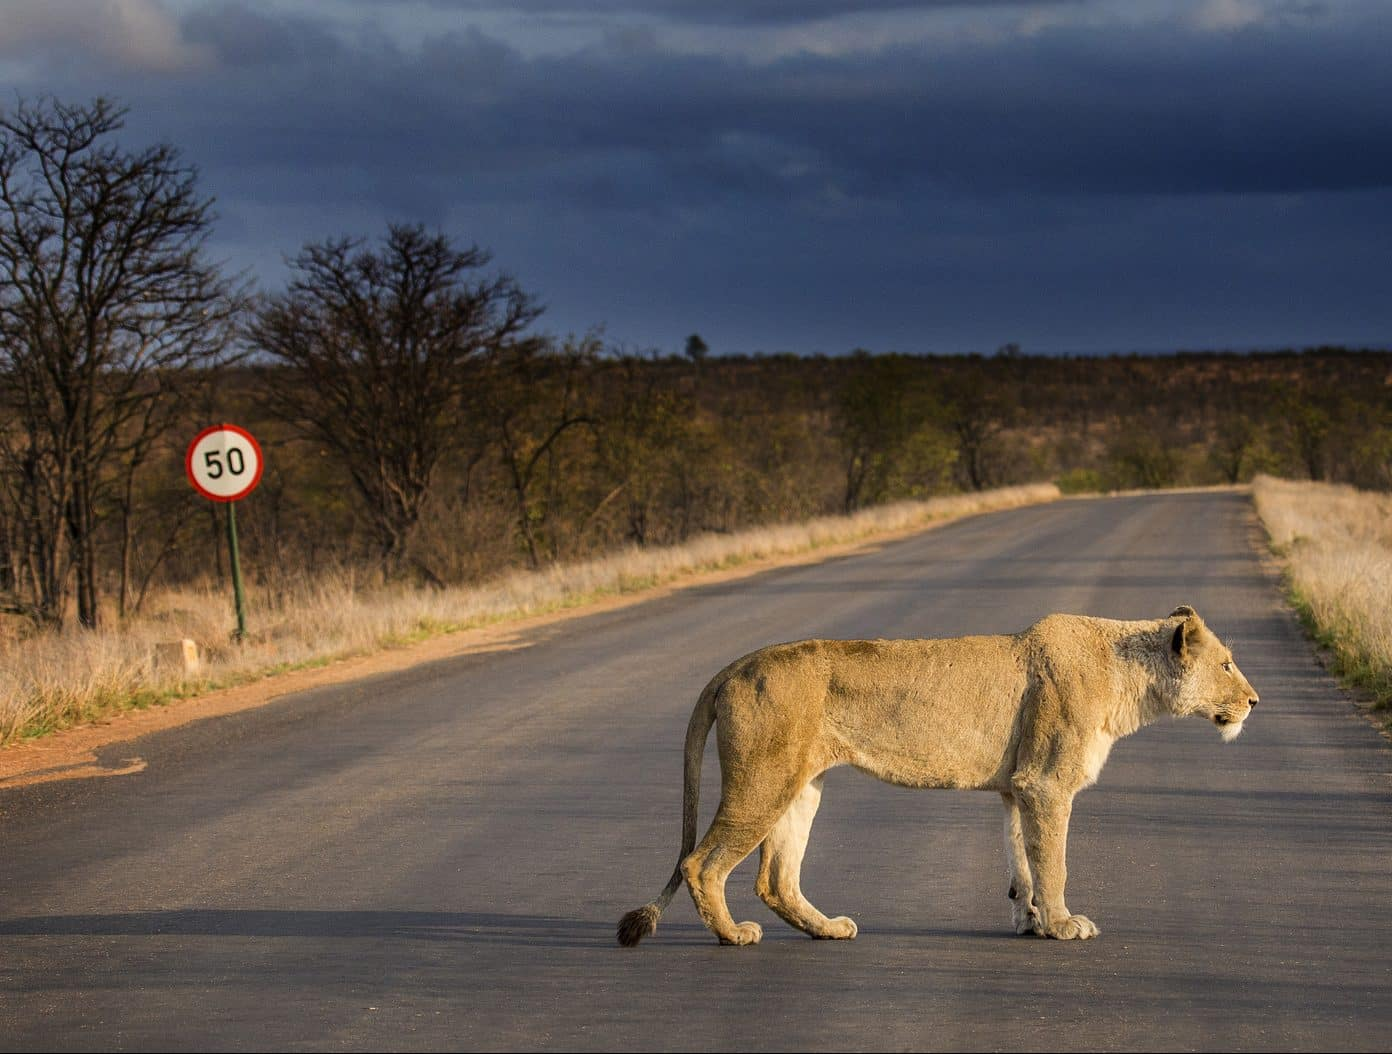 Lion on tar road